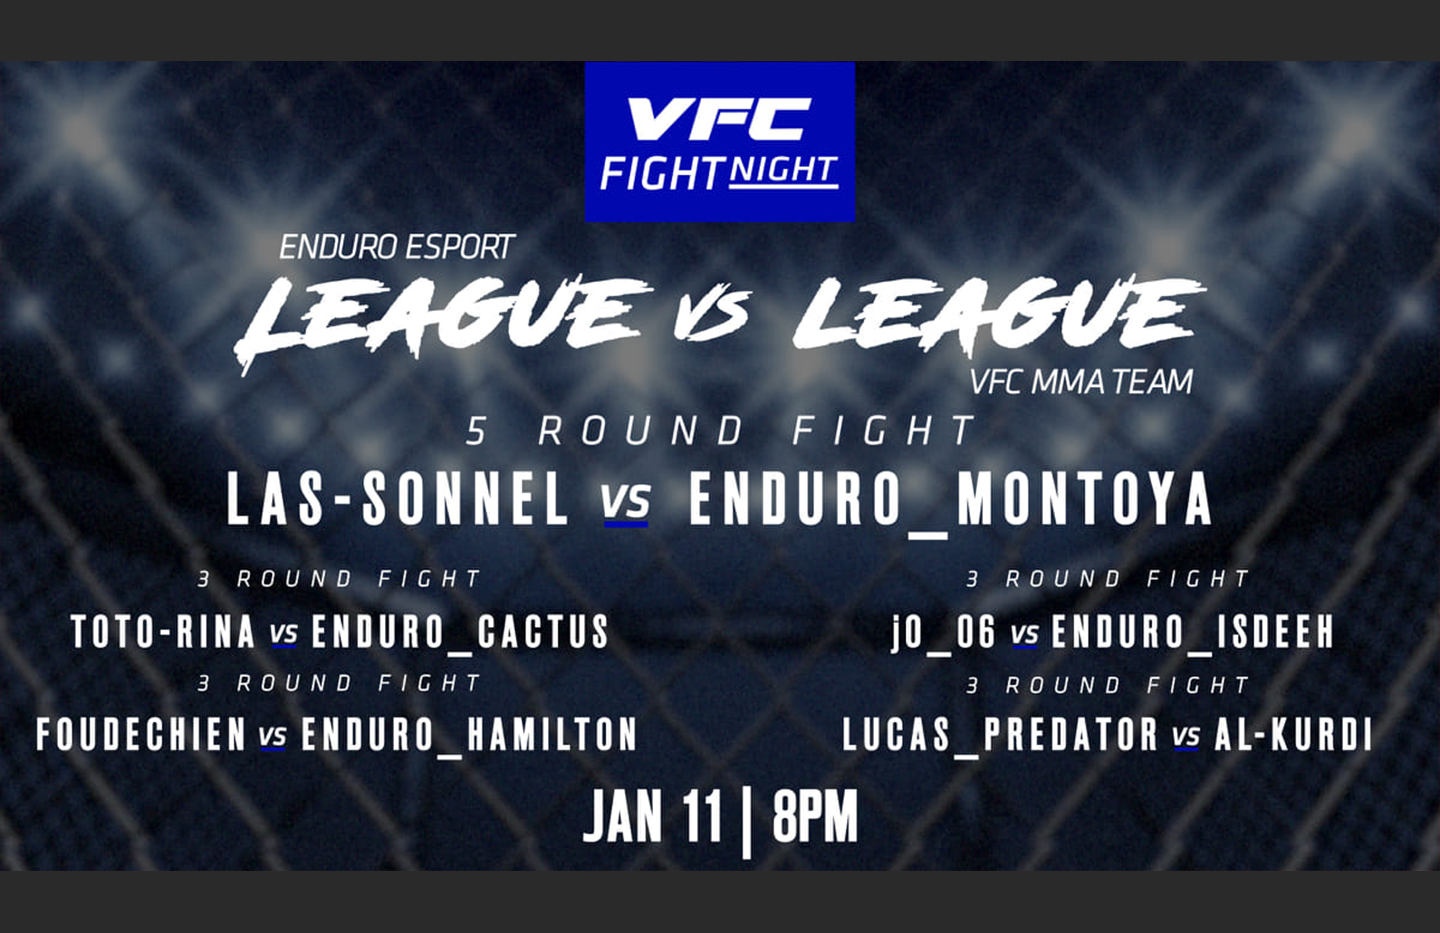 VS.UFC VFC FN (site).png